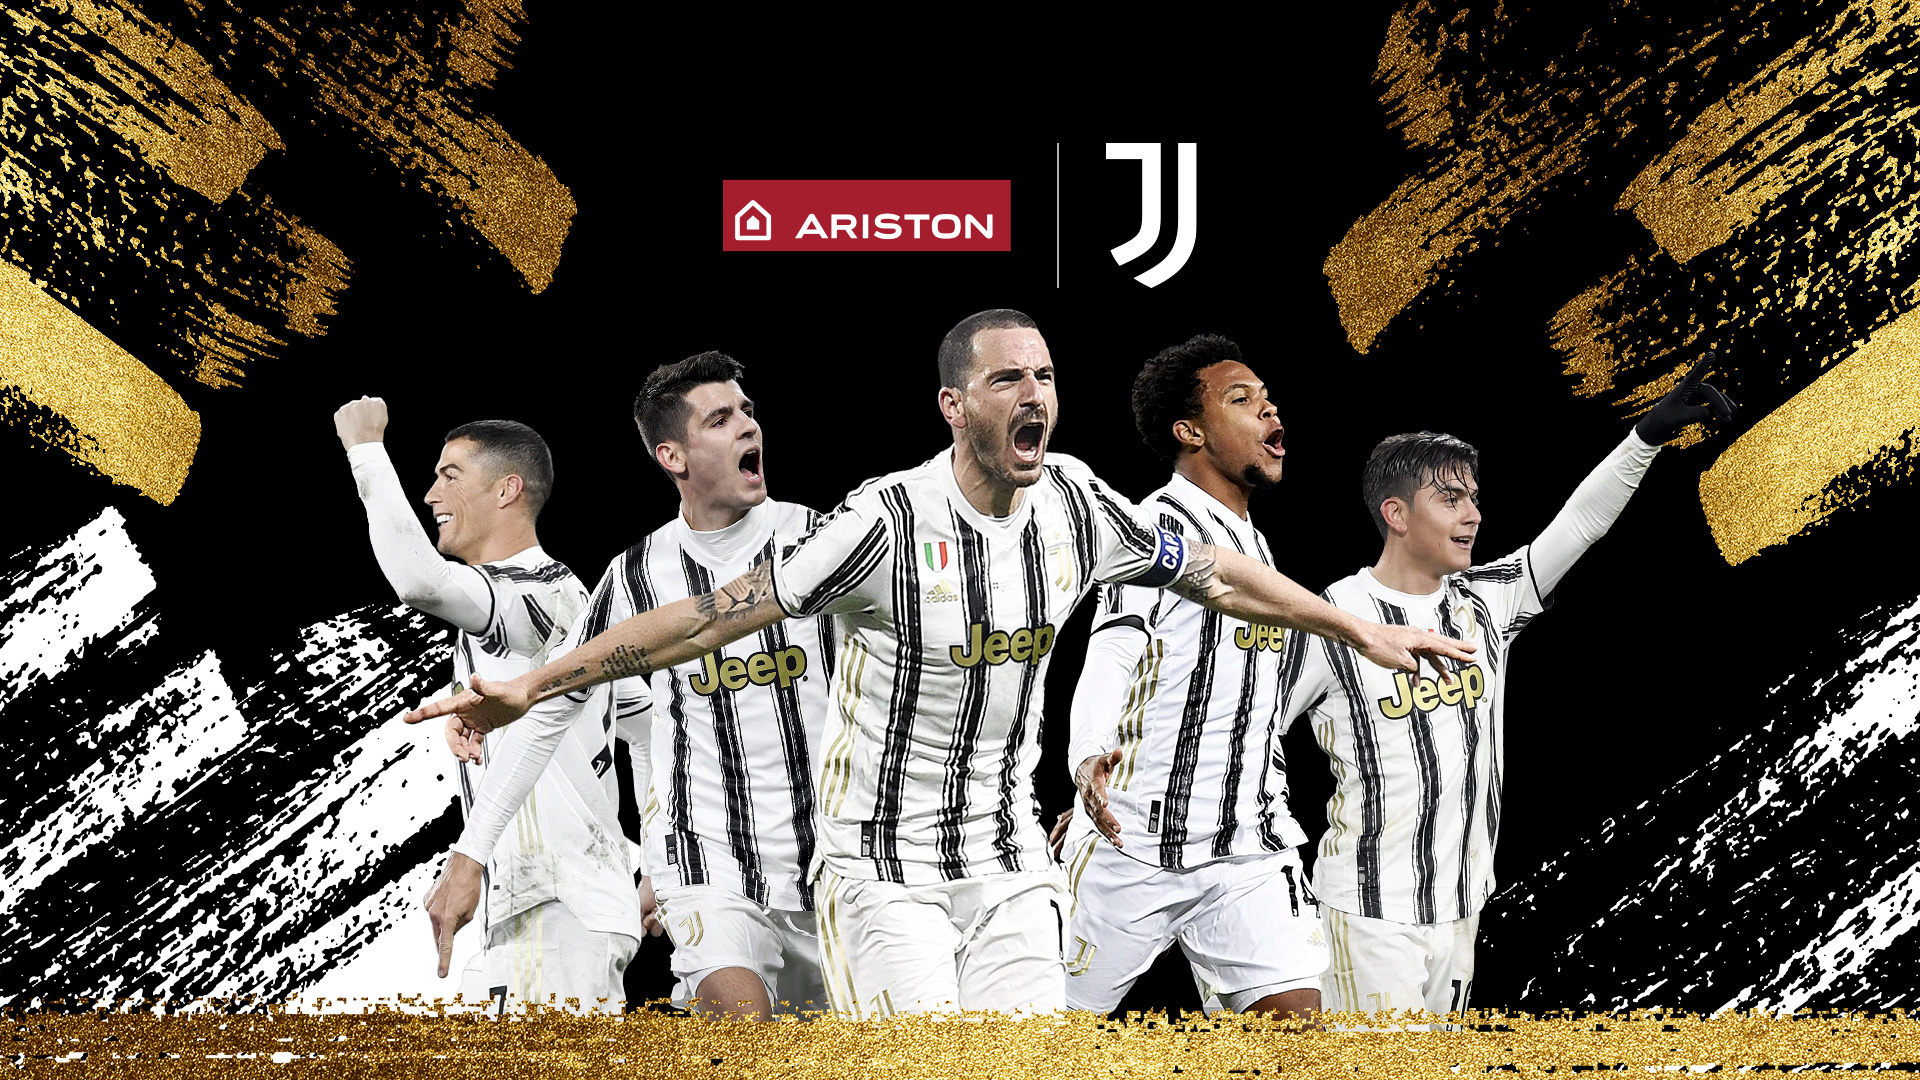 Ariston and Juventus together with a Regional Partnership in China